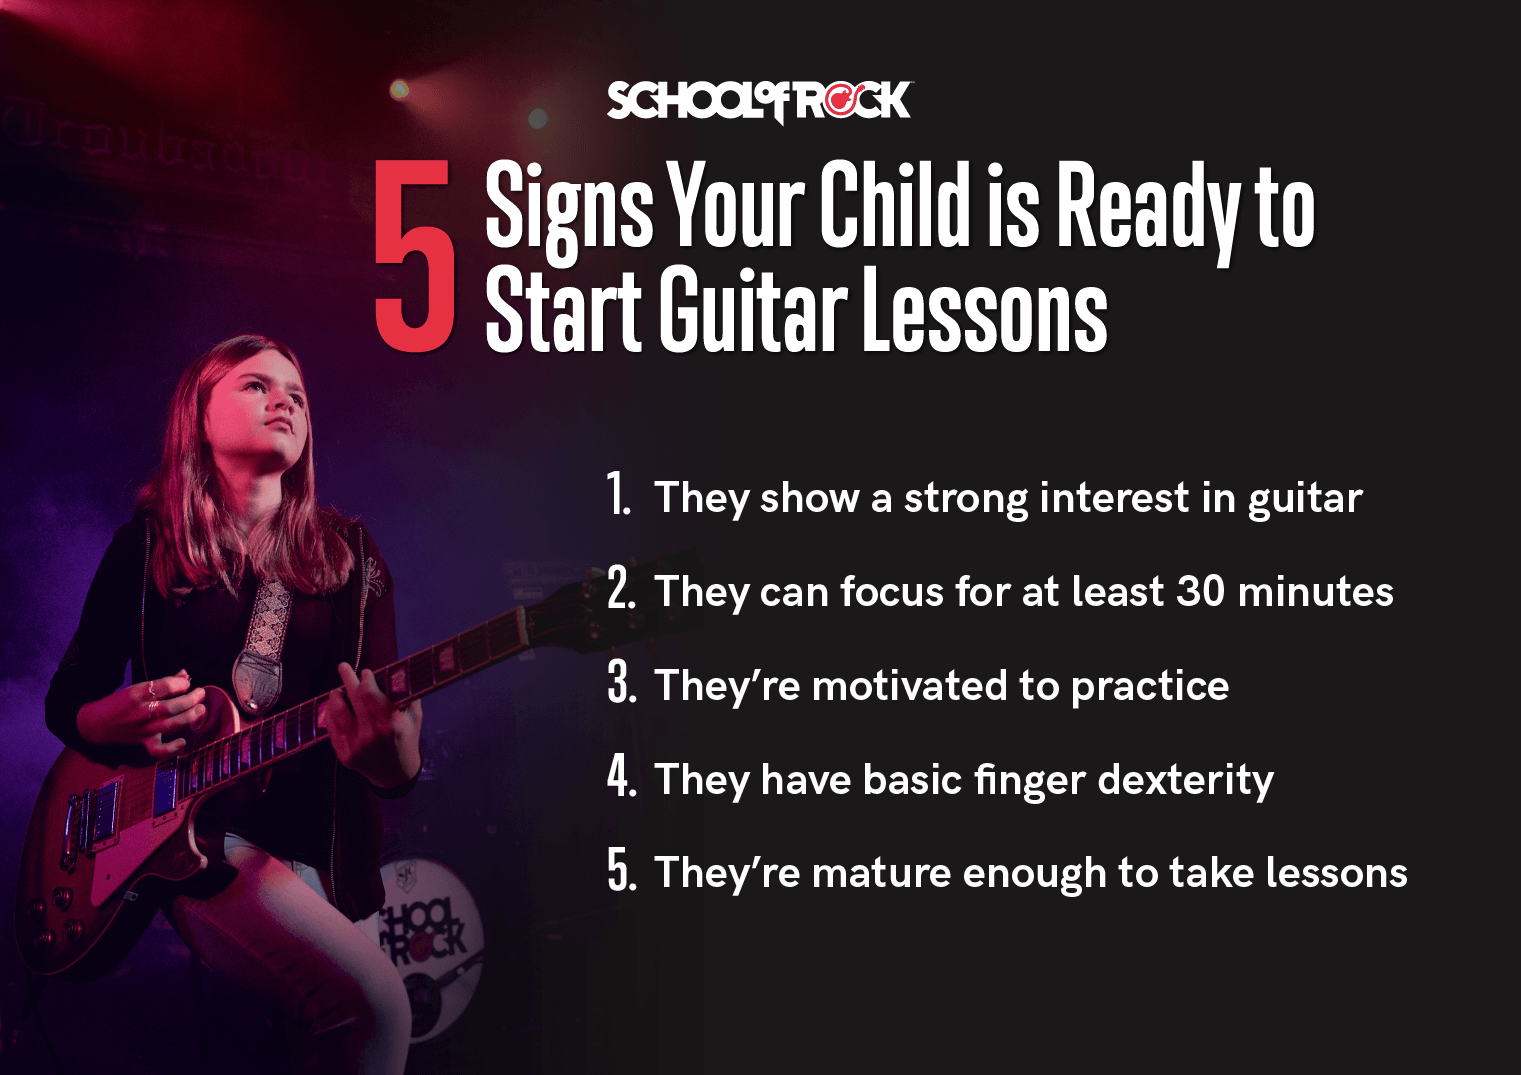 5 signs your child is ready to start guitar lessons